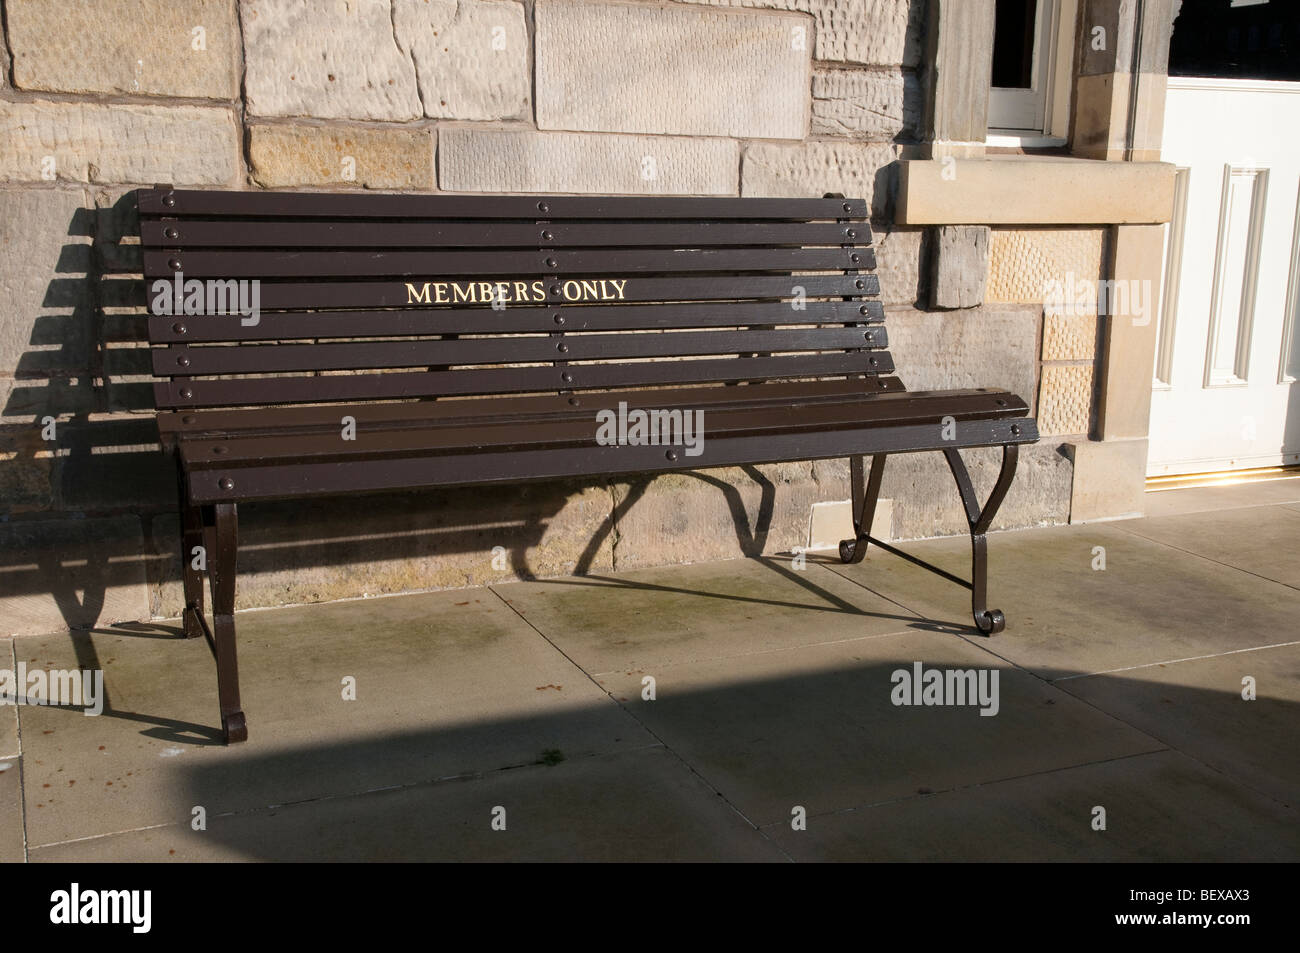 Members only seating at the Royal & Ancient Golf Club, St.Andrews. - Stock Image